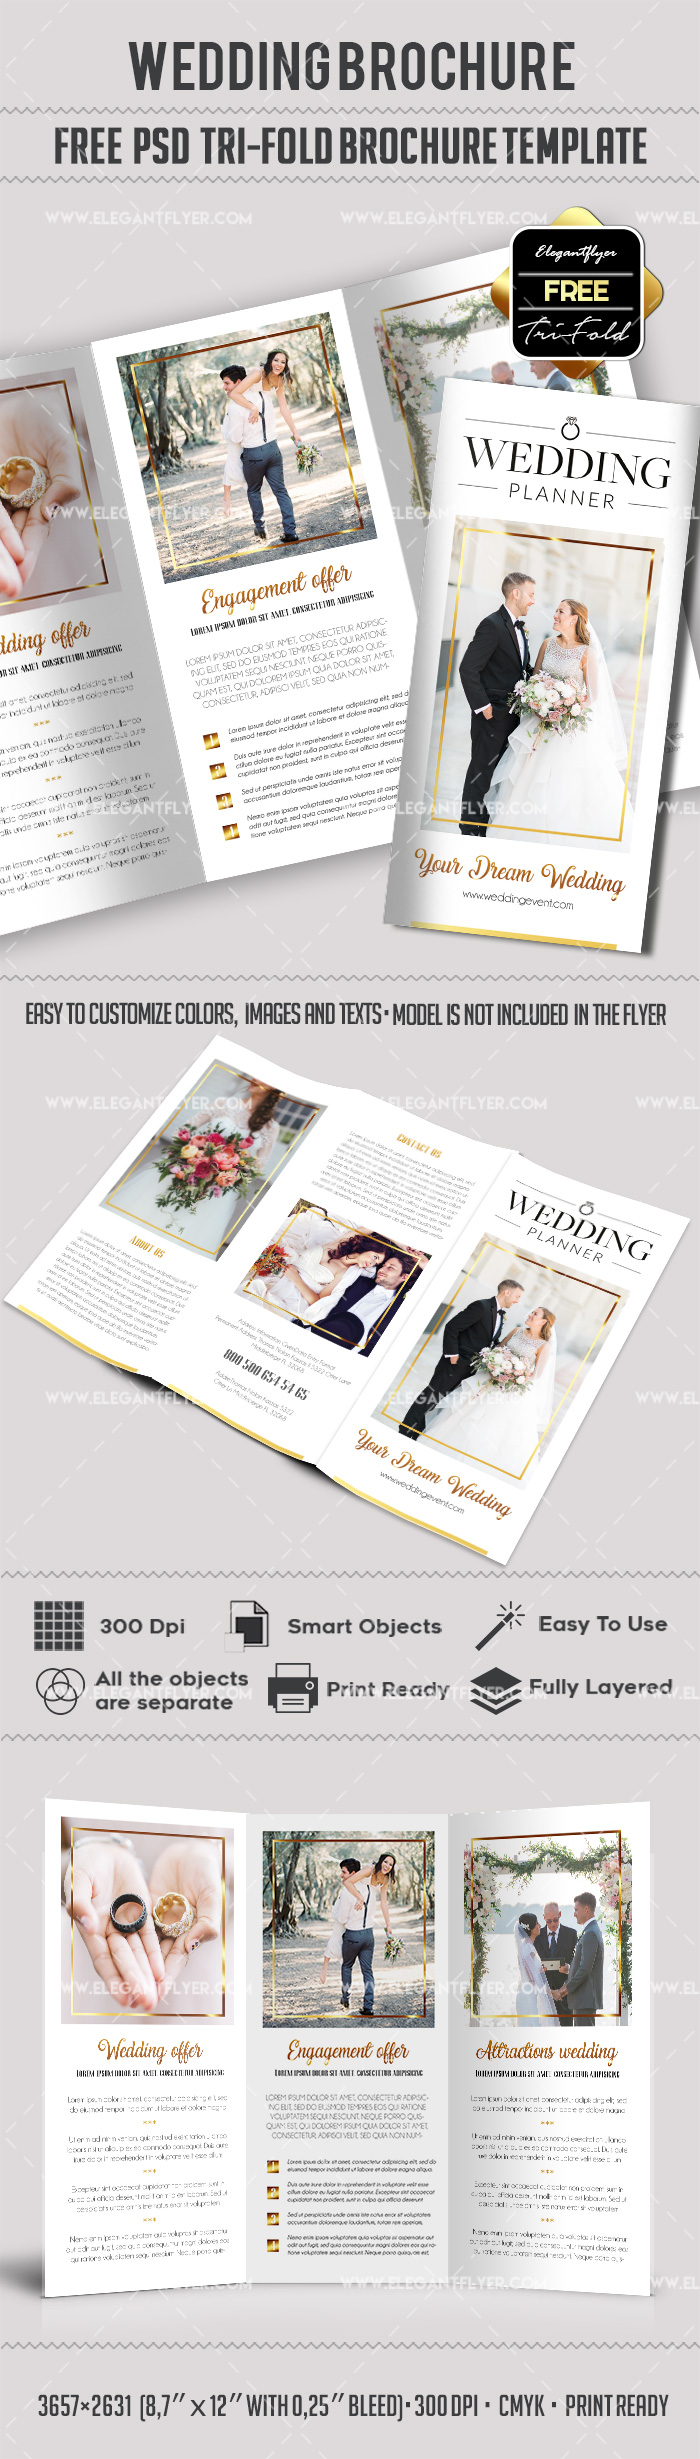 Wedding – Free PSD Tri-Fold Brochure Template